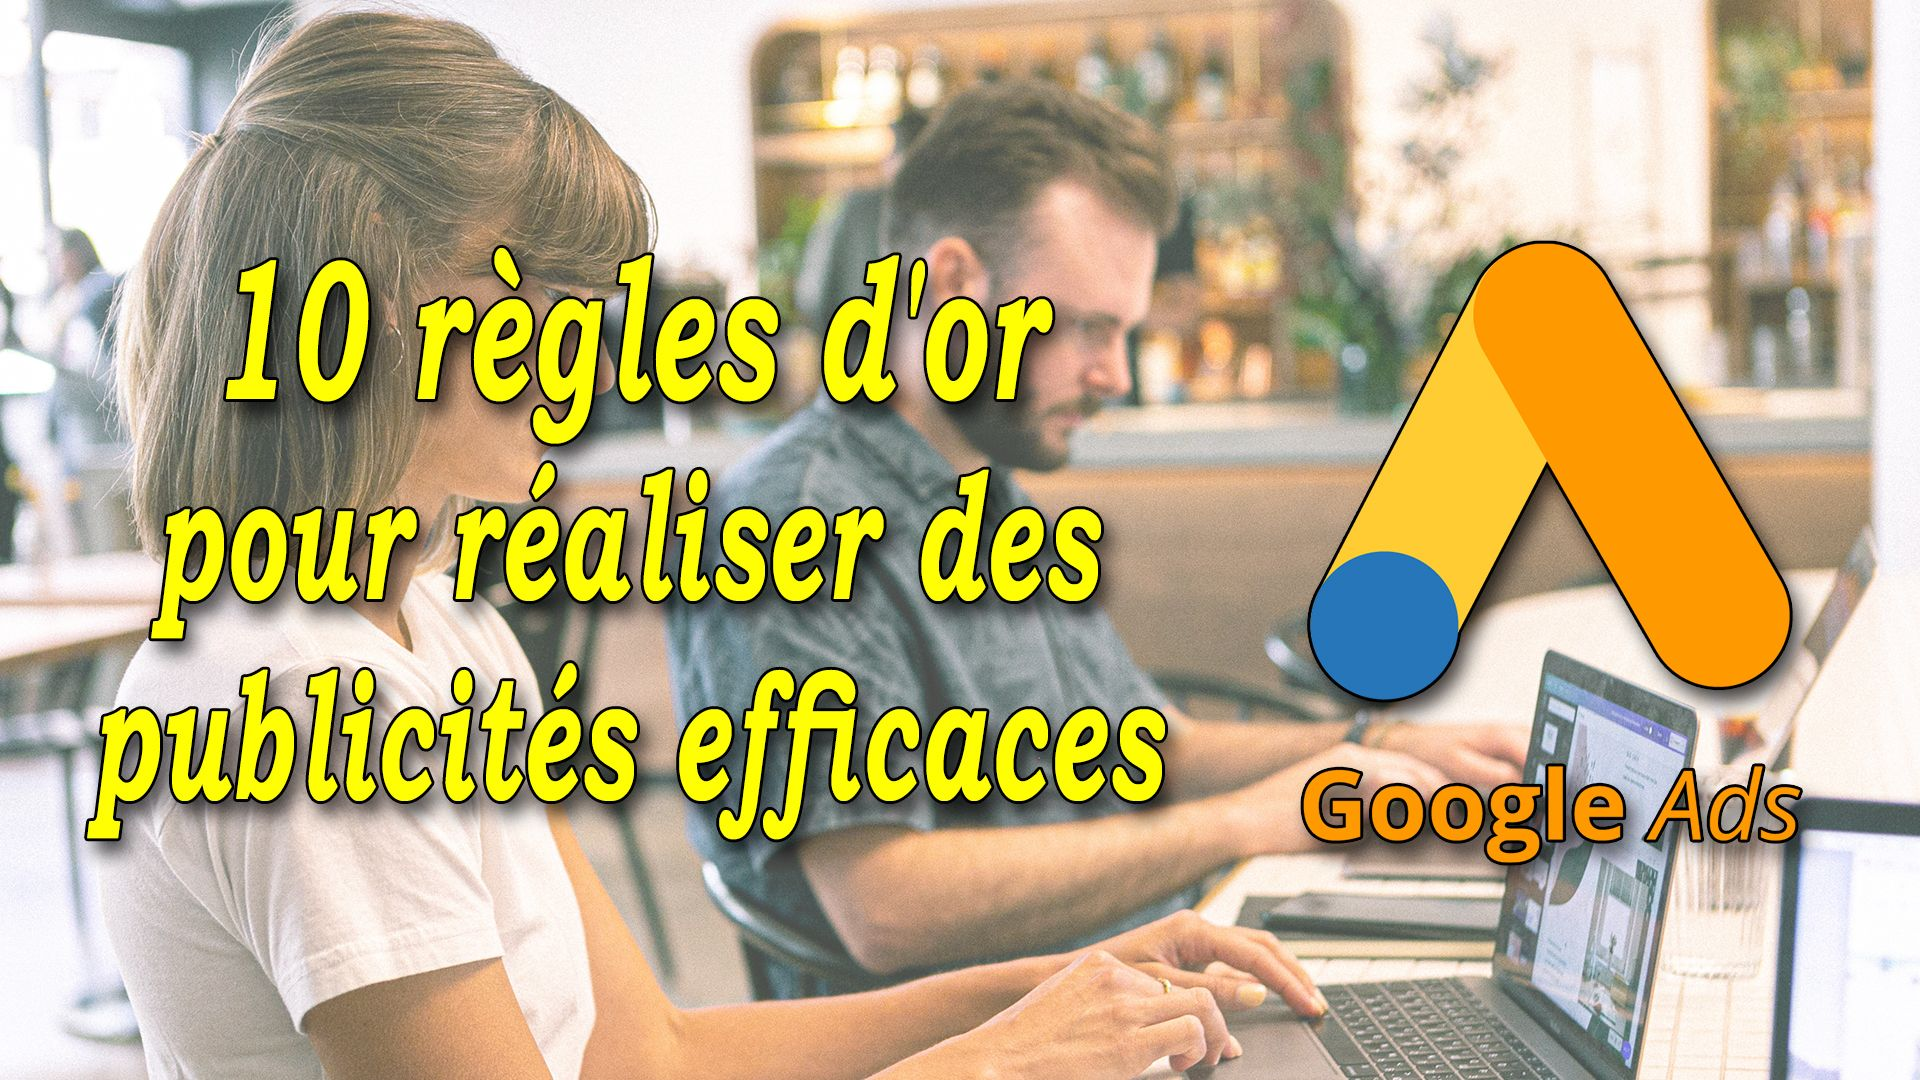 10 règles d'or pour réaliser des pubs AdWords efficaces #GrowthHacking #WebMarketing #FormationGrowthHacking #CentreDeFormationFrance #TunnelAARRR #AARRR #SocialMedia #CommunityManagement #SEO